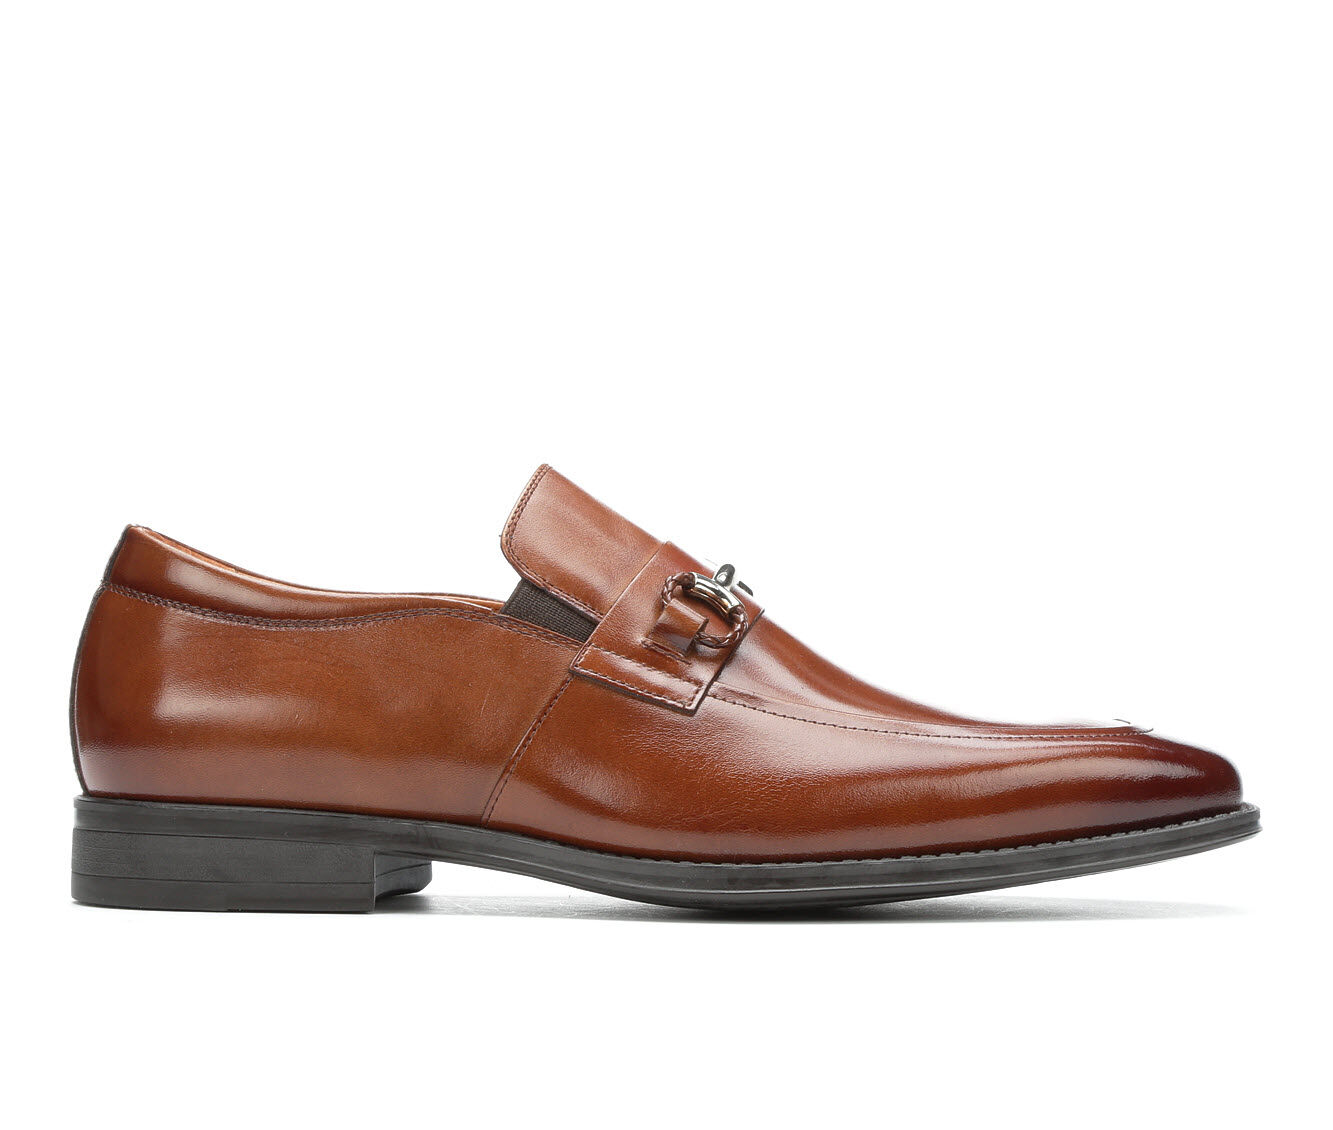 Men's Stacy Adams Pierce Dress Shoes Cognac